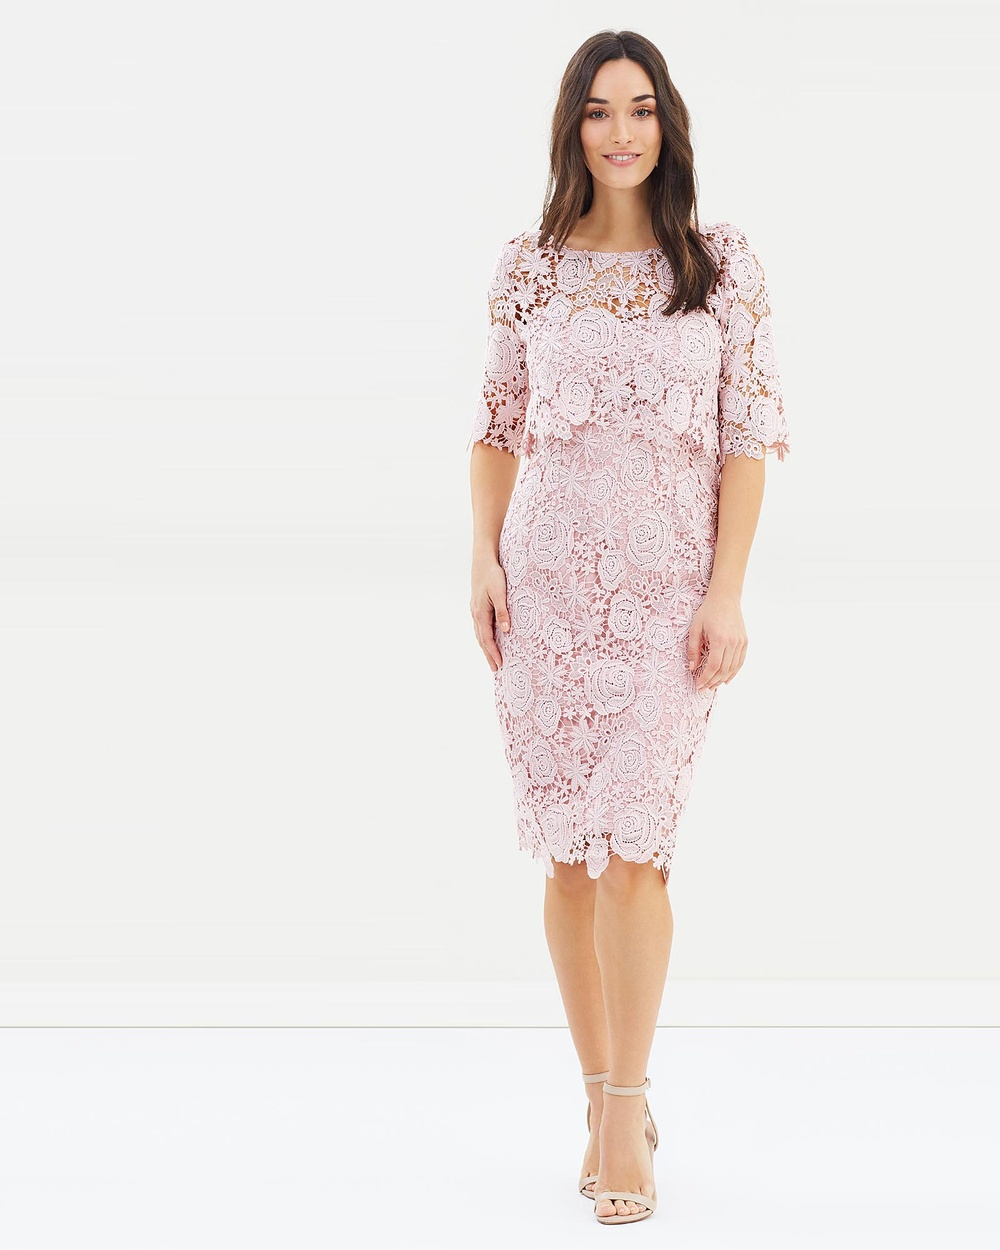 Montique Nevenka Lace Dress Dresses Vintage Pink Nevenka Lace Dress